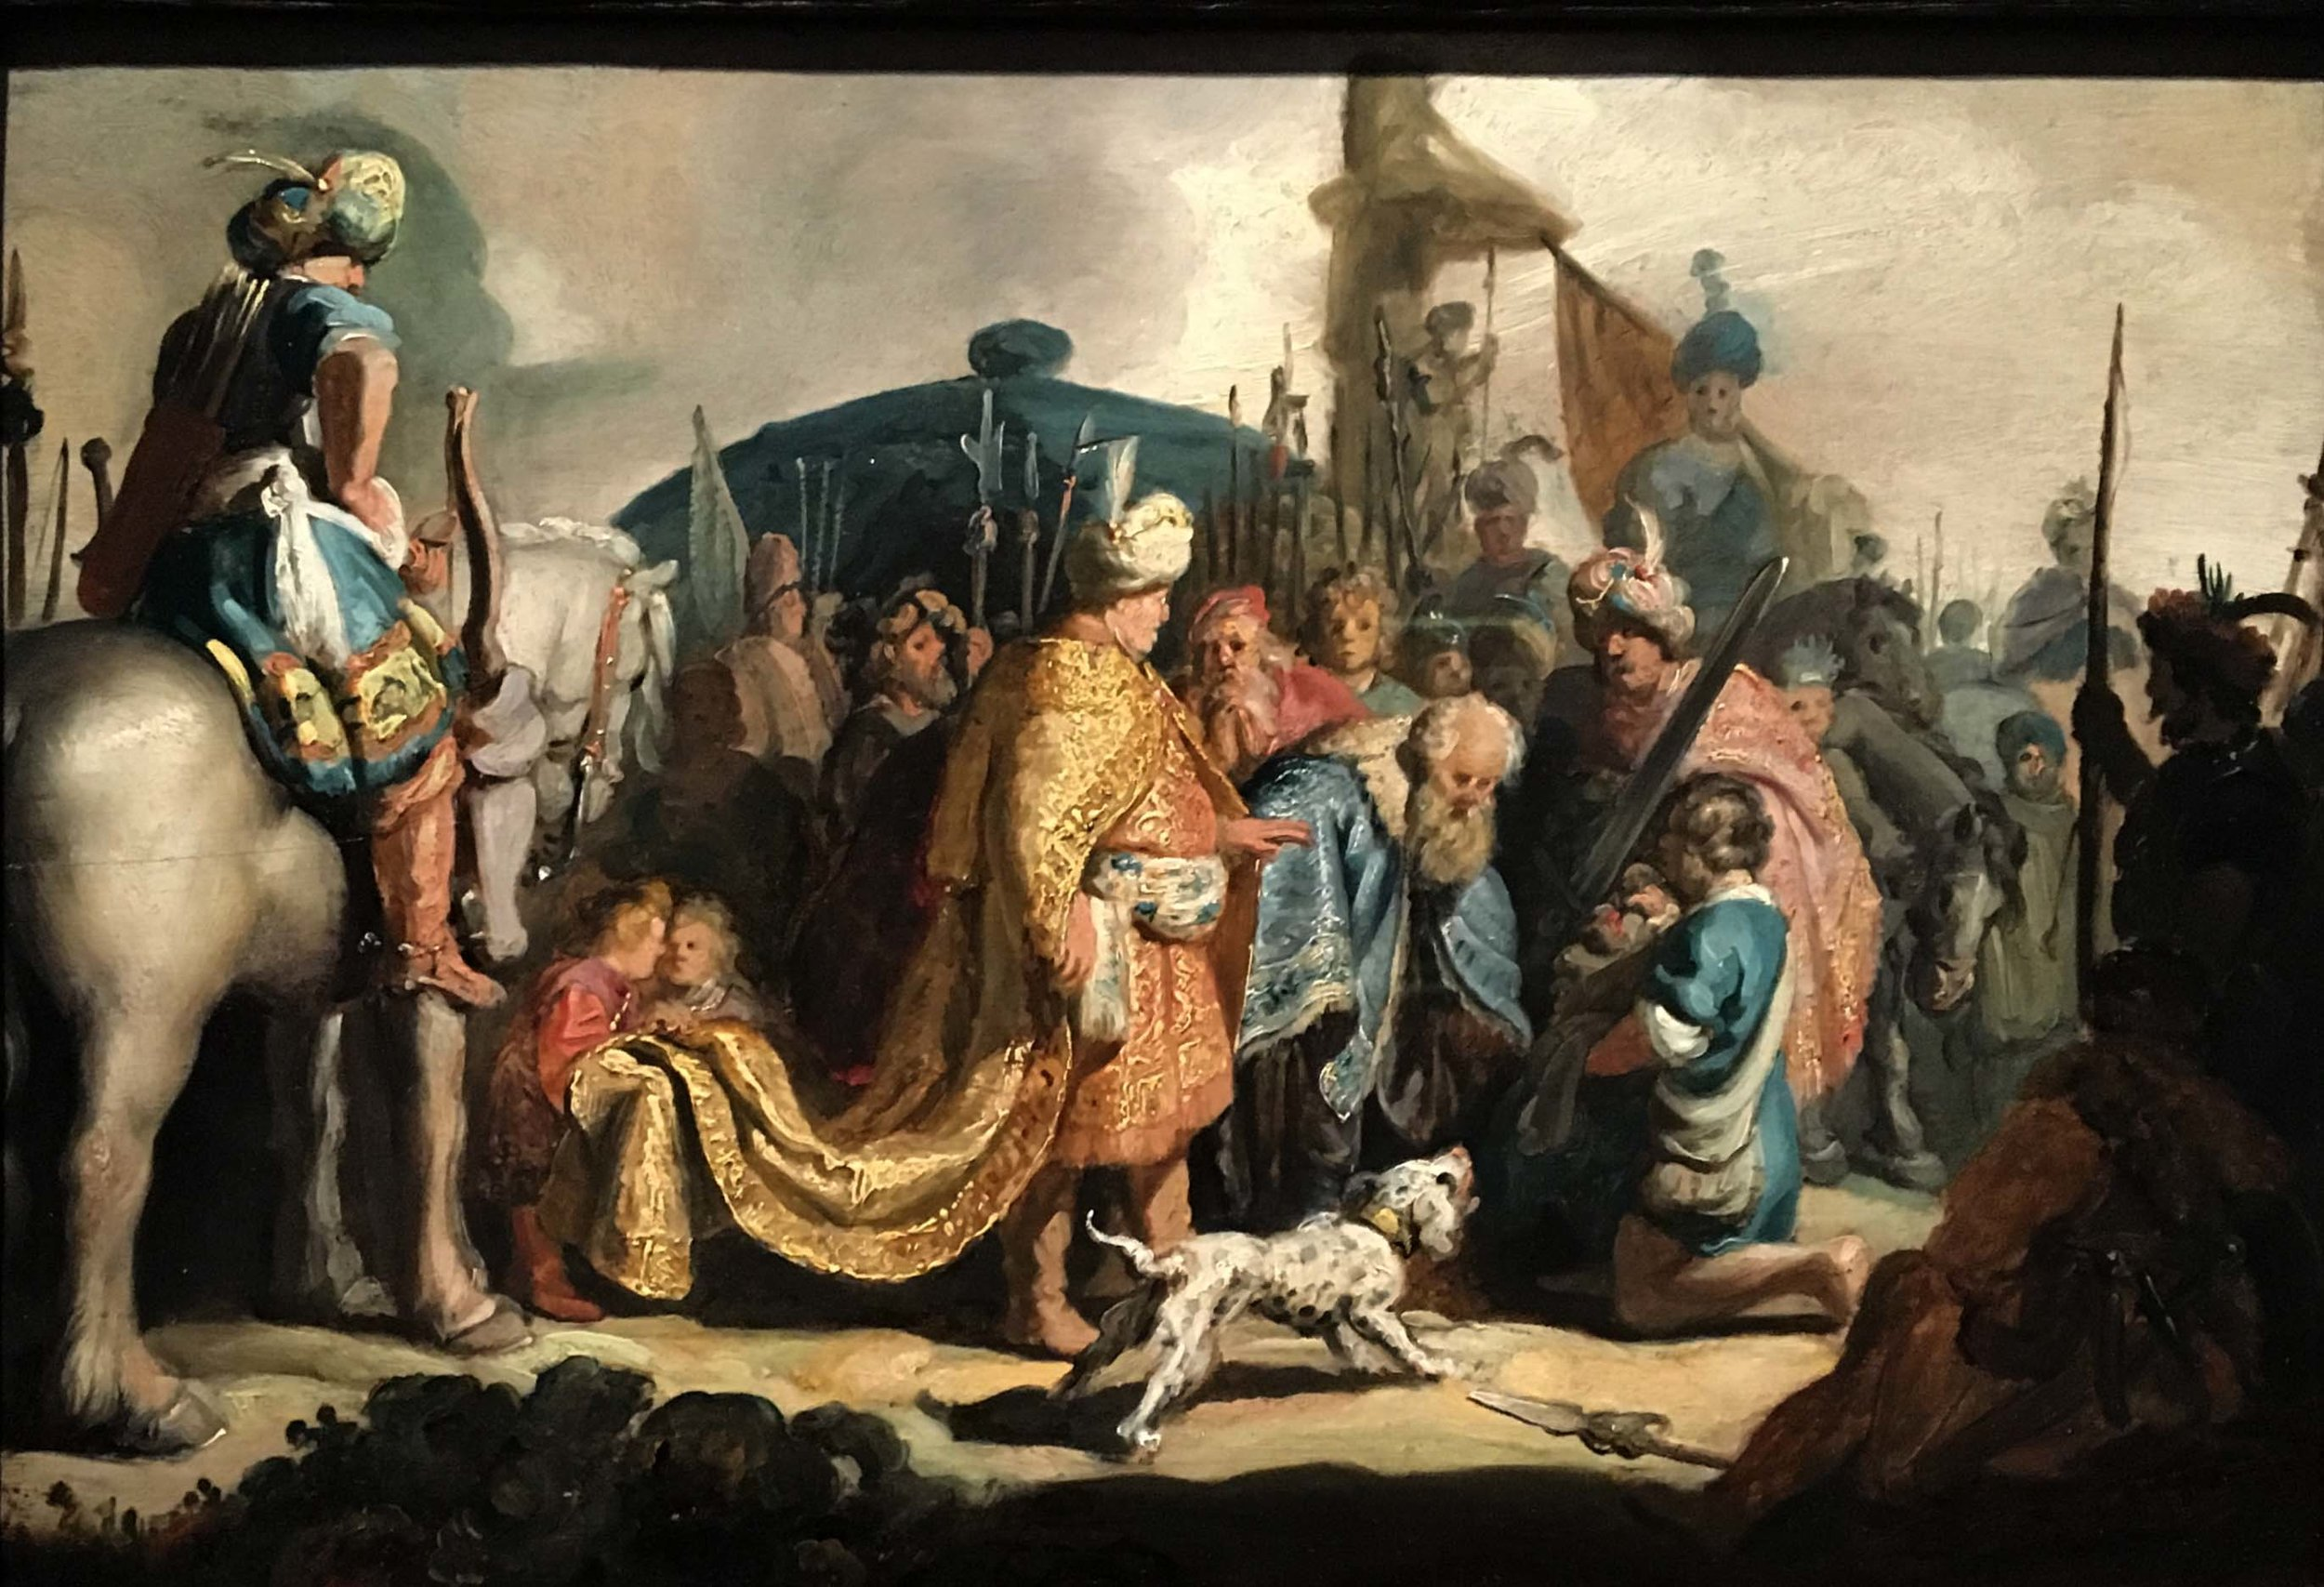 Rembrandt, David presenting King Saul with the head of Goliath, 1627